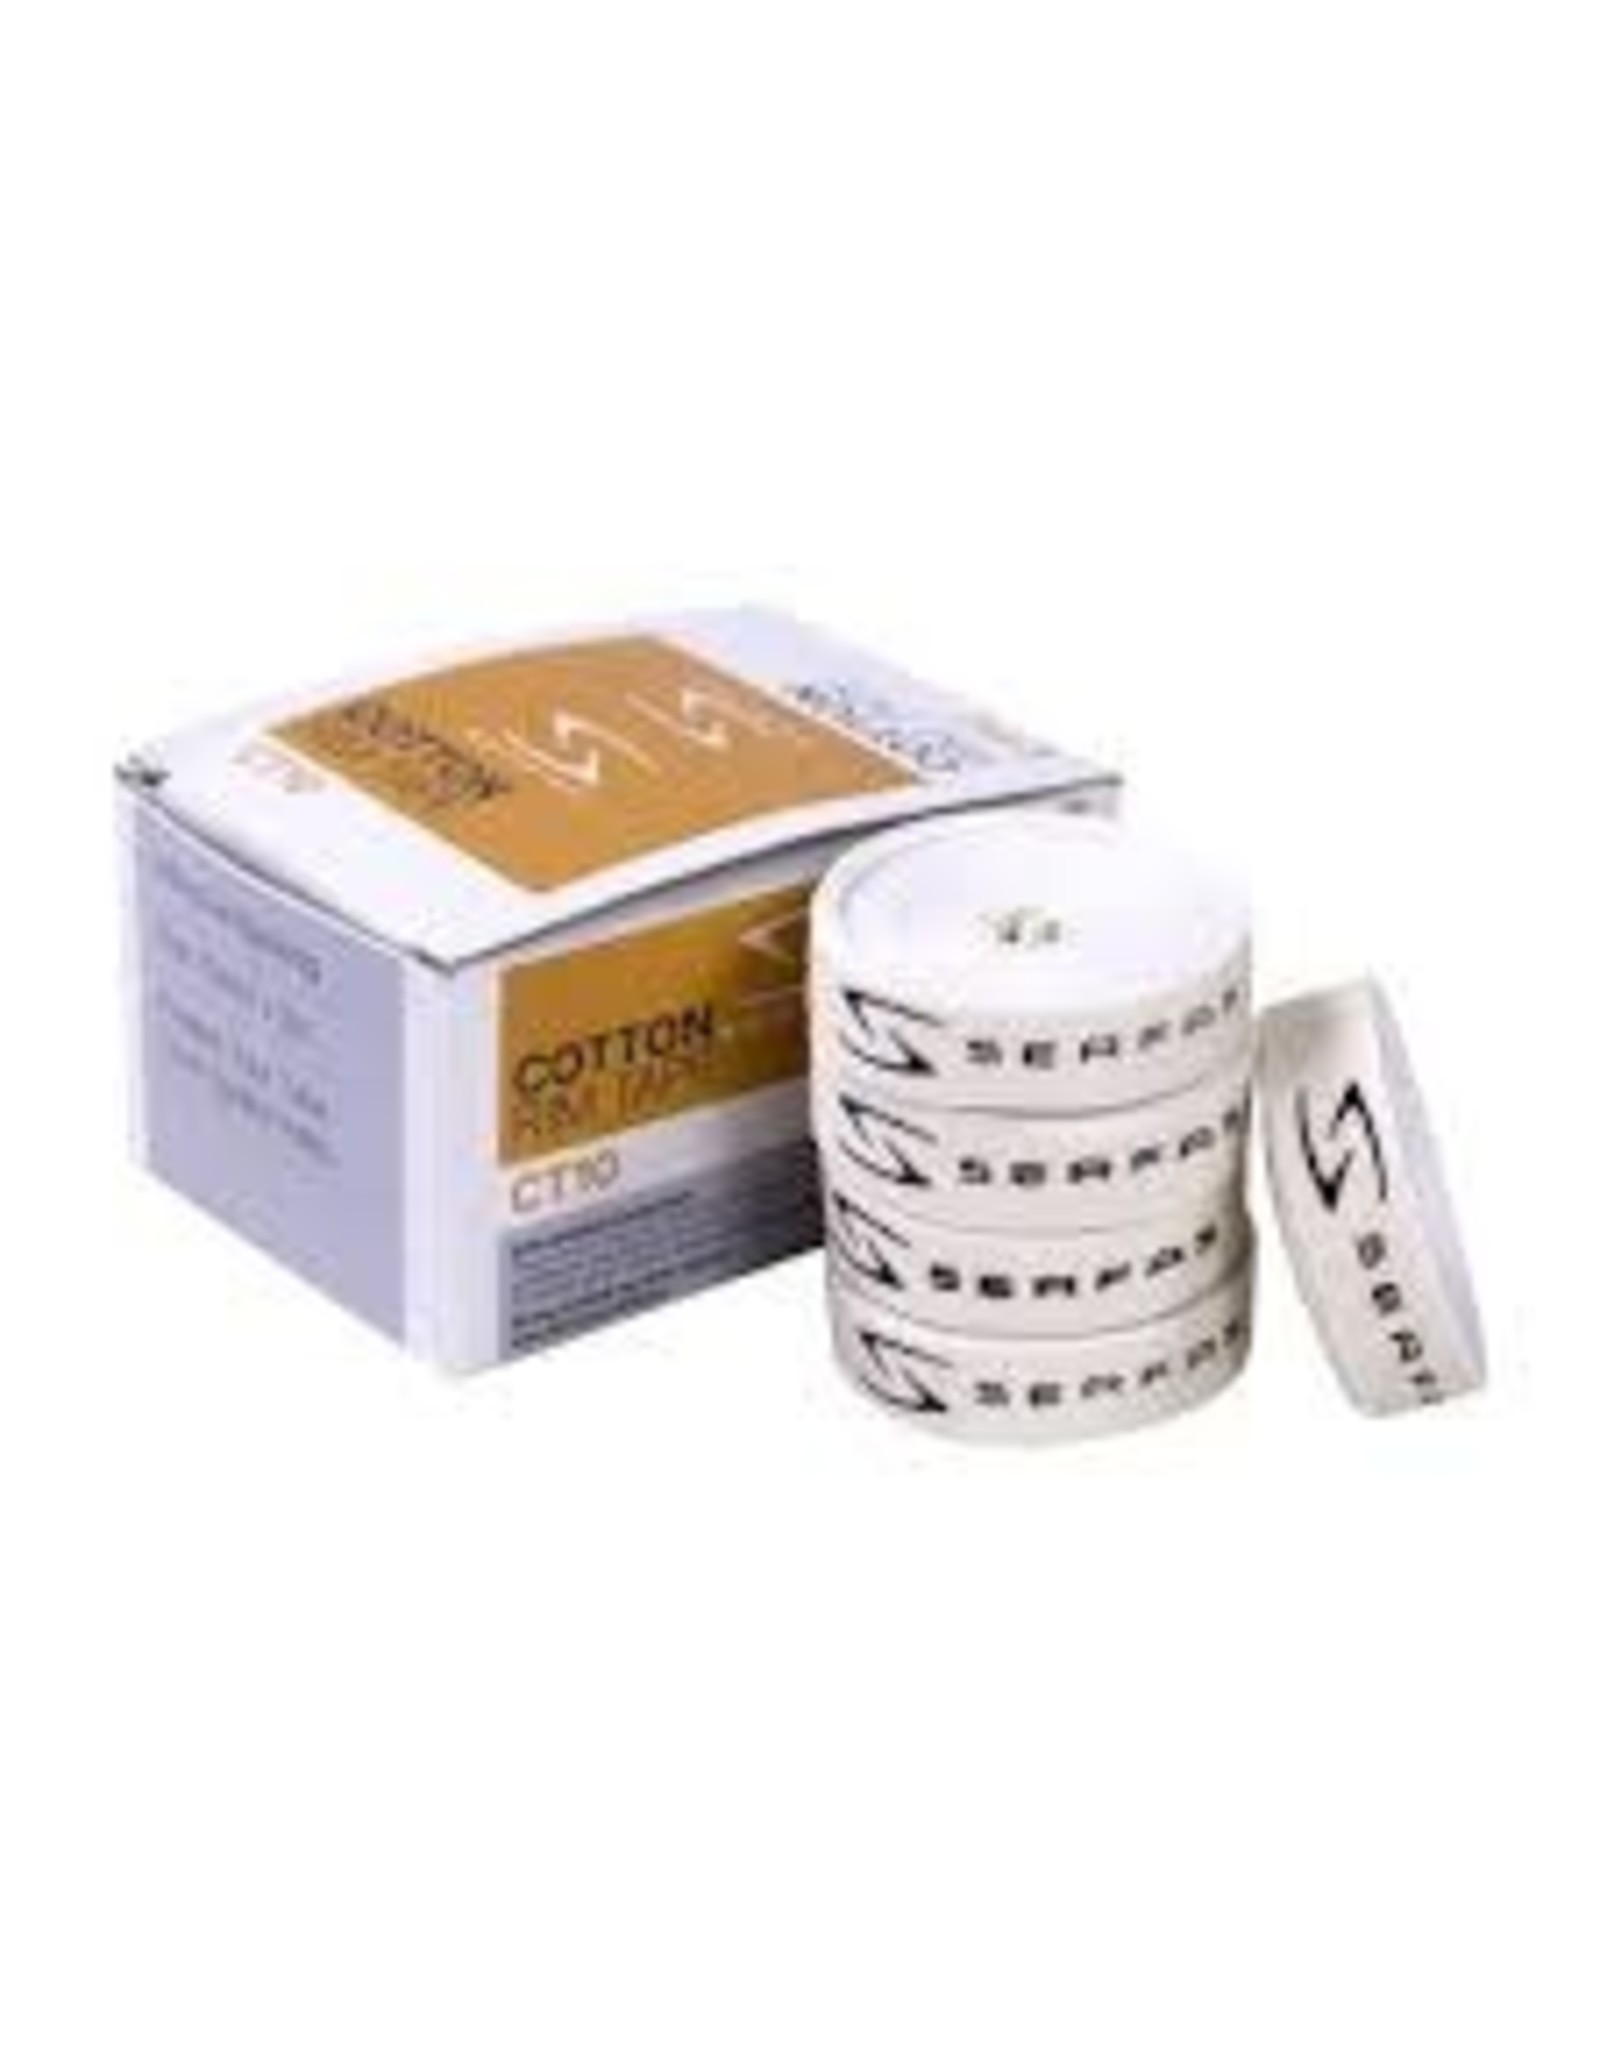 Serfas Rim Tape Serfas 22mm- 10 rolls per box